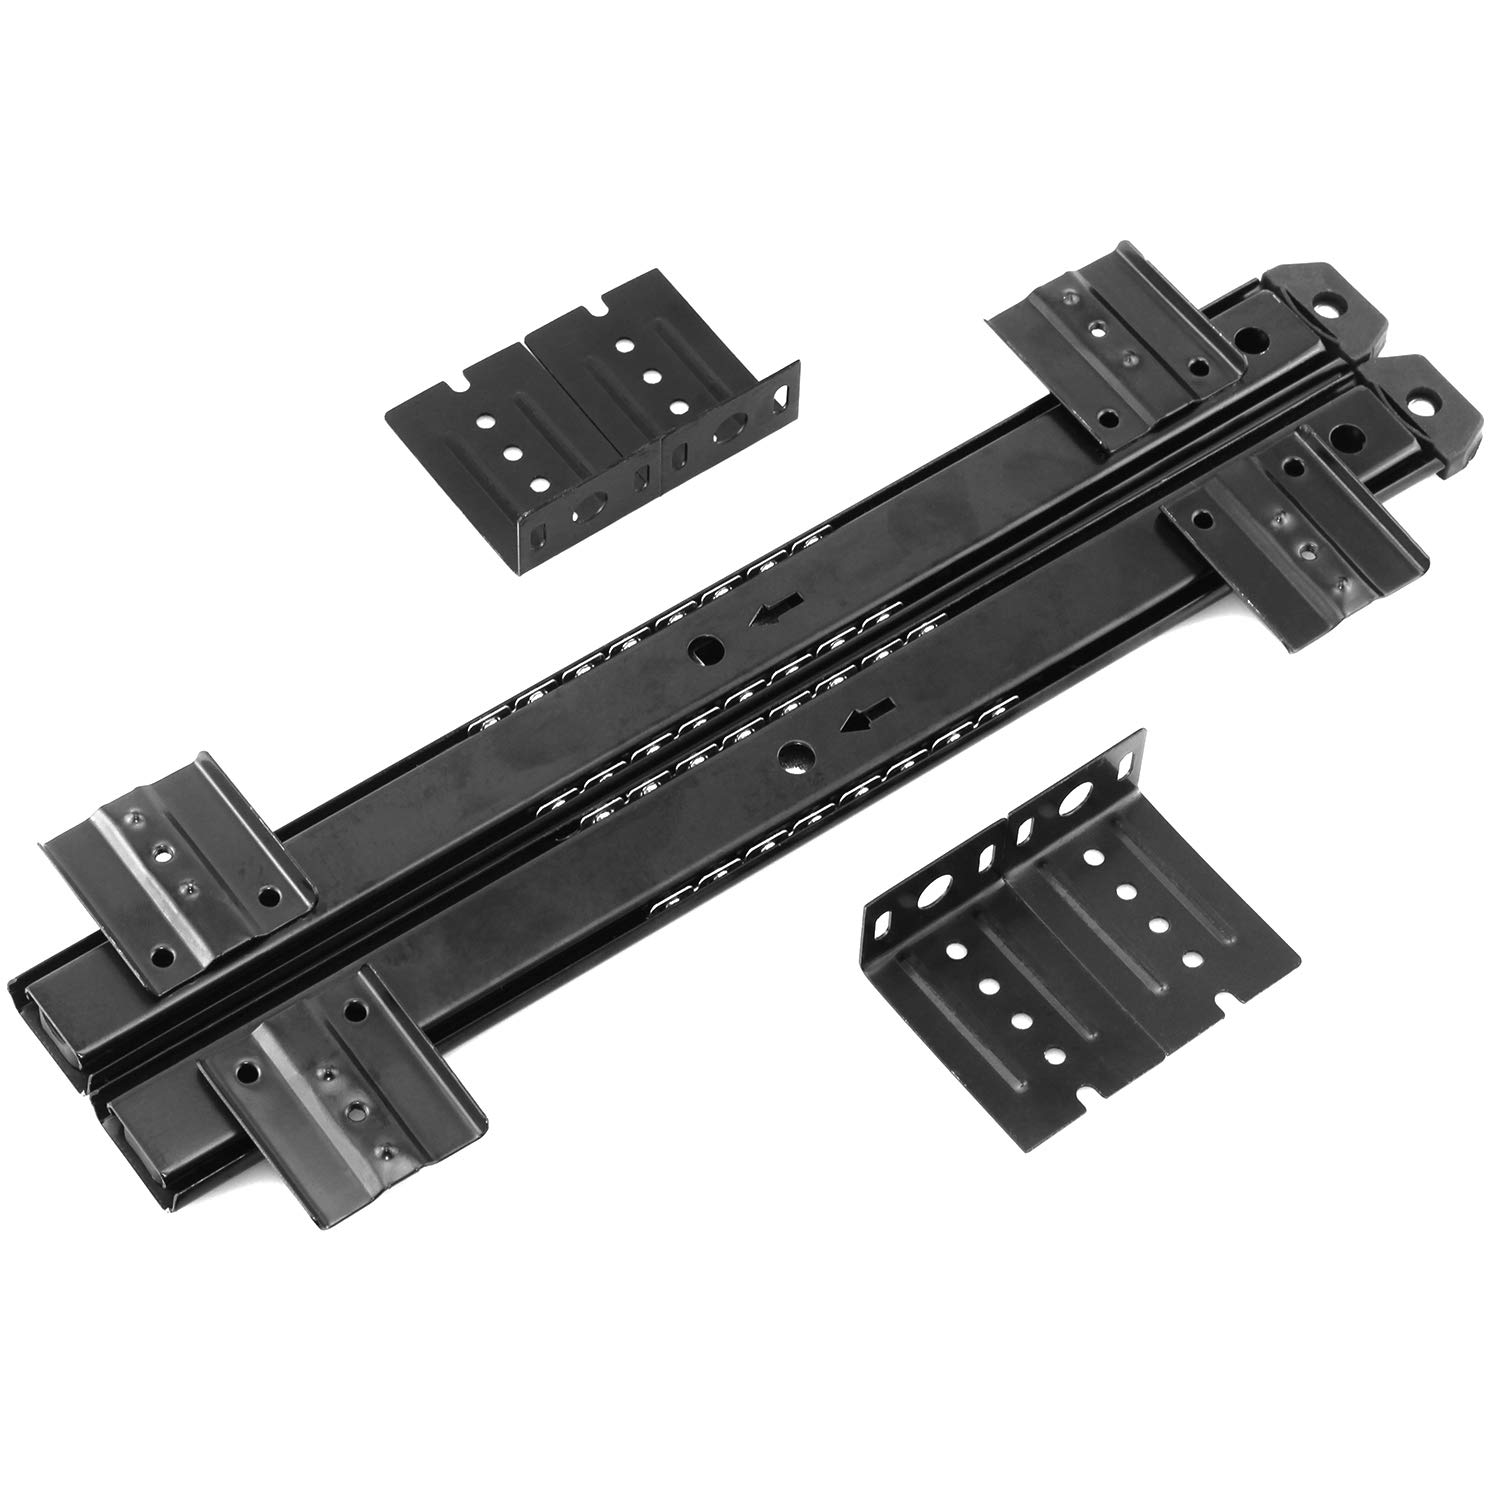 Lind Kitchen 1-Pair 14 inch 350mm Keyboard Slide Super Smooth Mute Ball Bearing Pull Out Tray Adjustable Hanging Bracket Suspension Track Guide Rail Fold Telescopic Drawer Runners Black